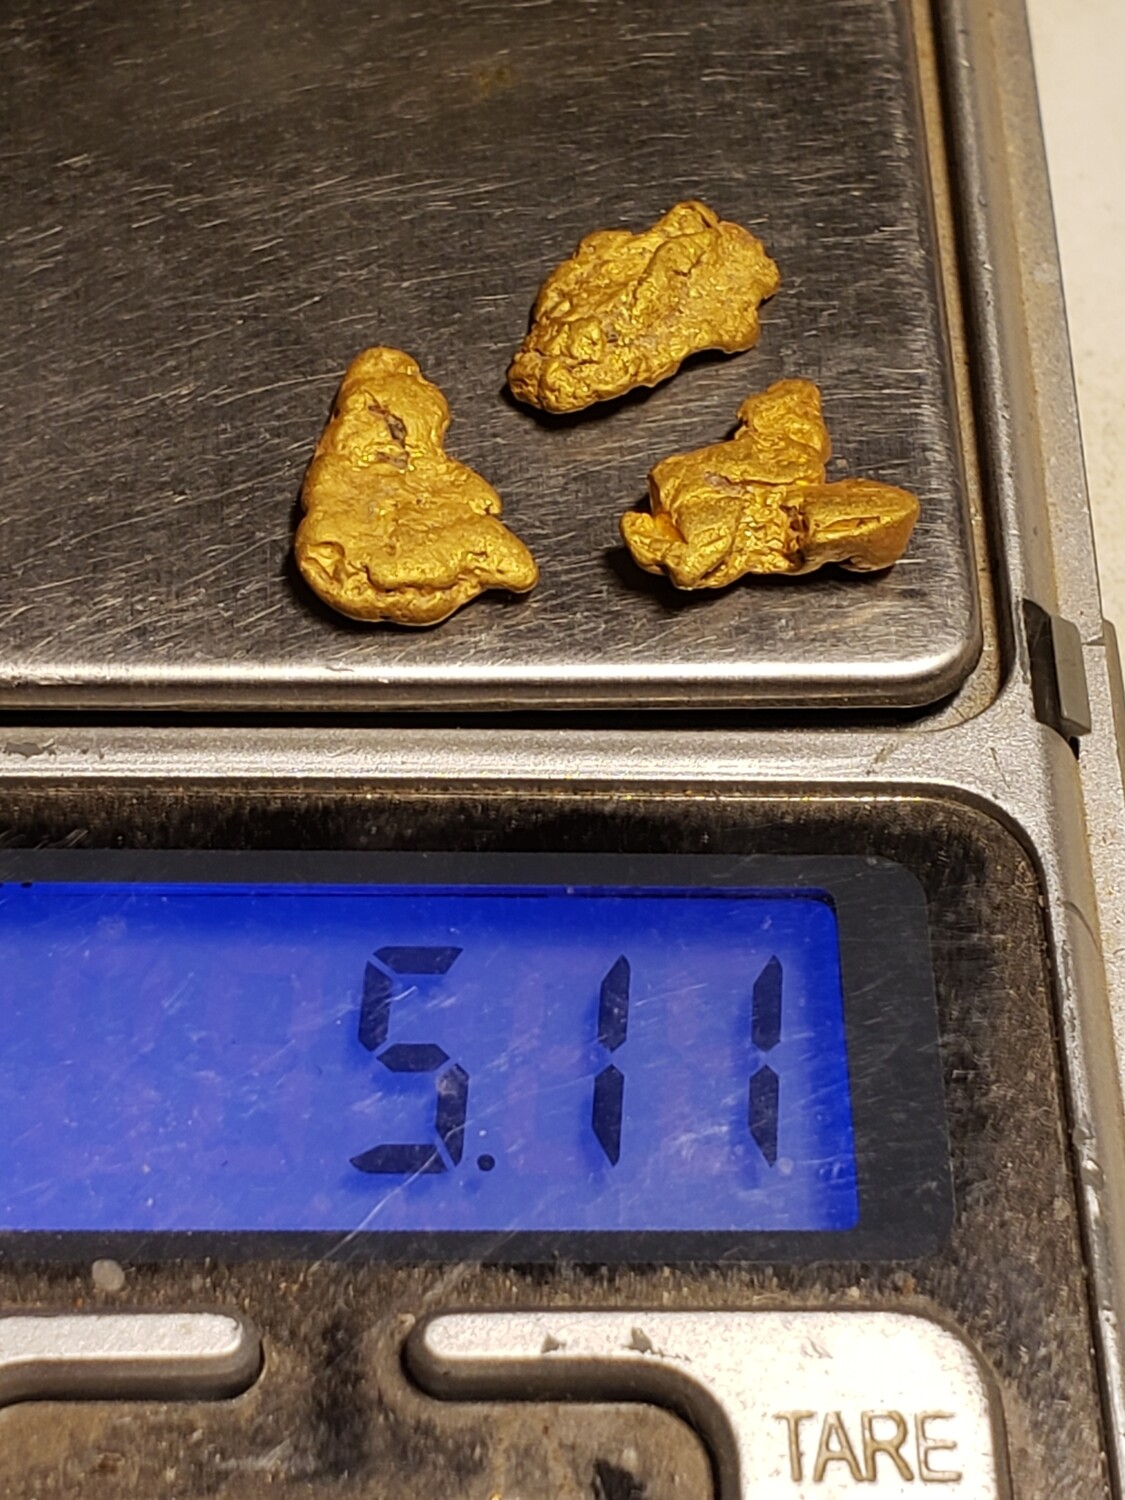 3 gold nuggets - 5.14 grams